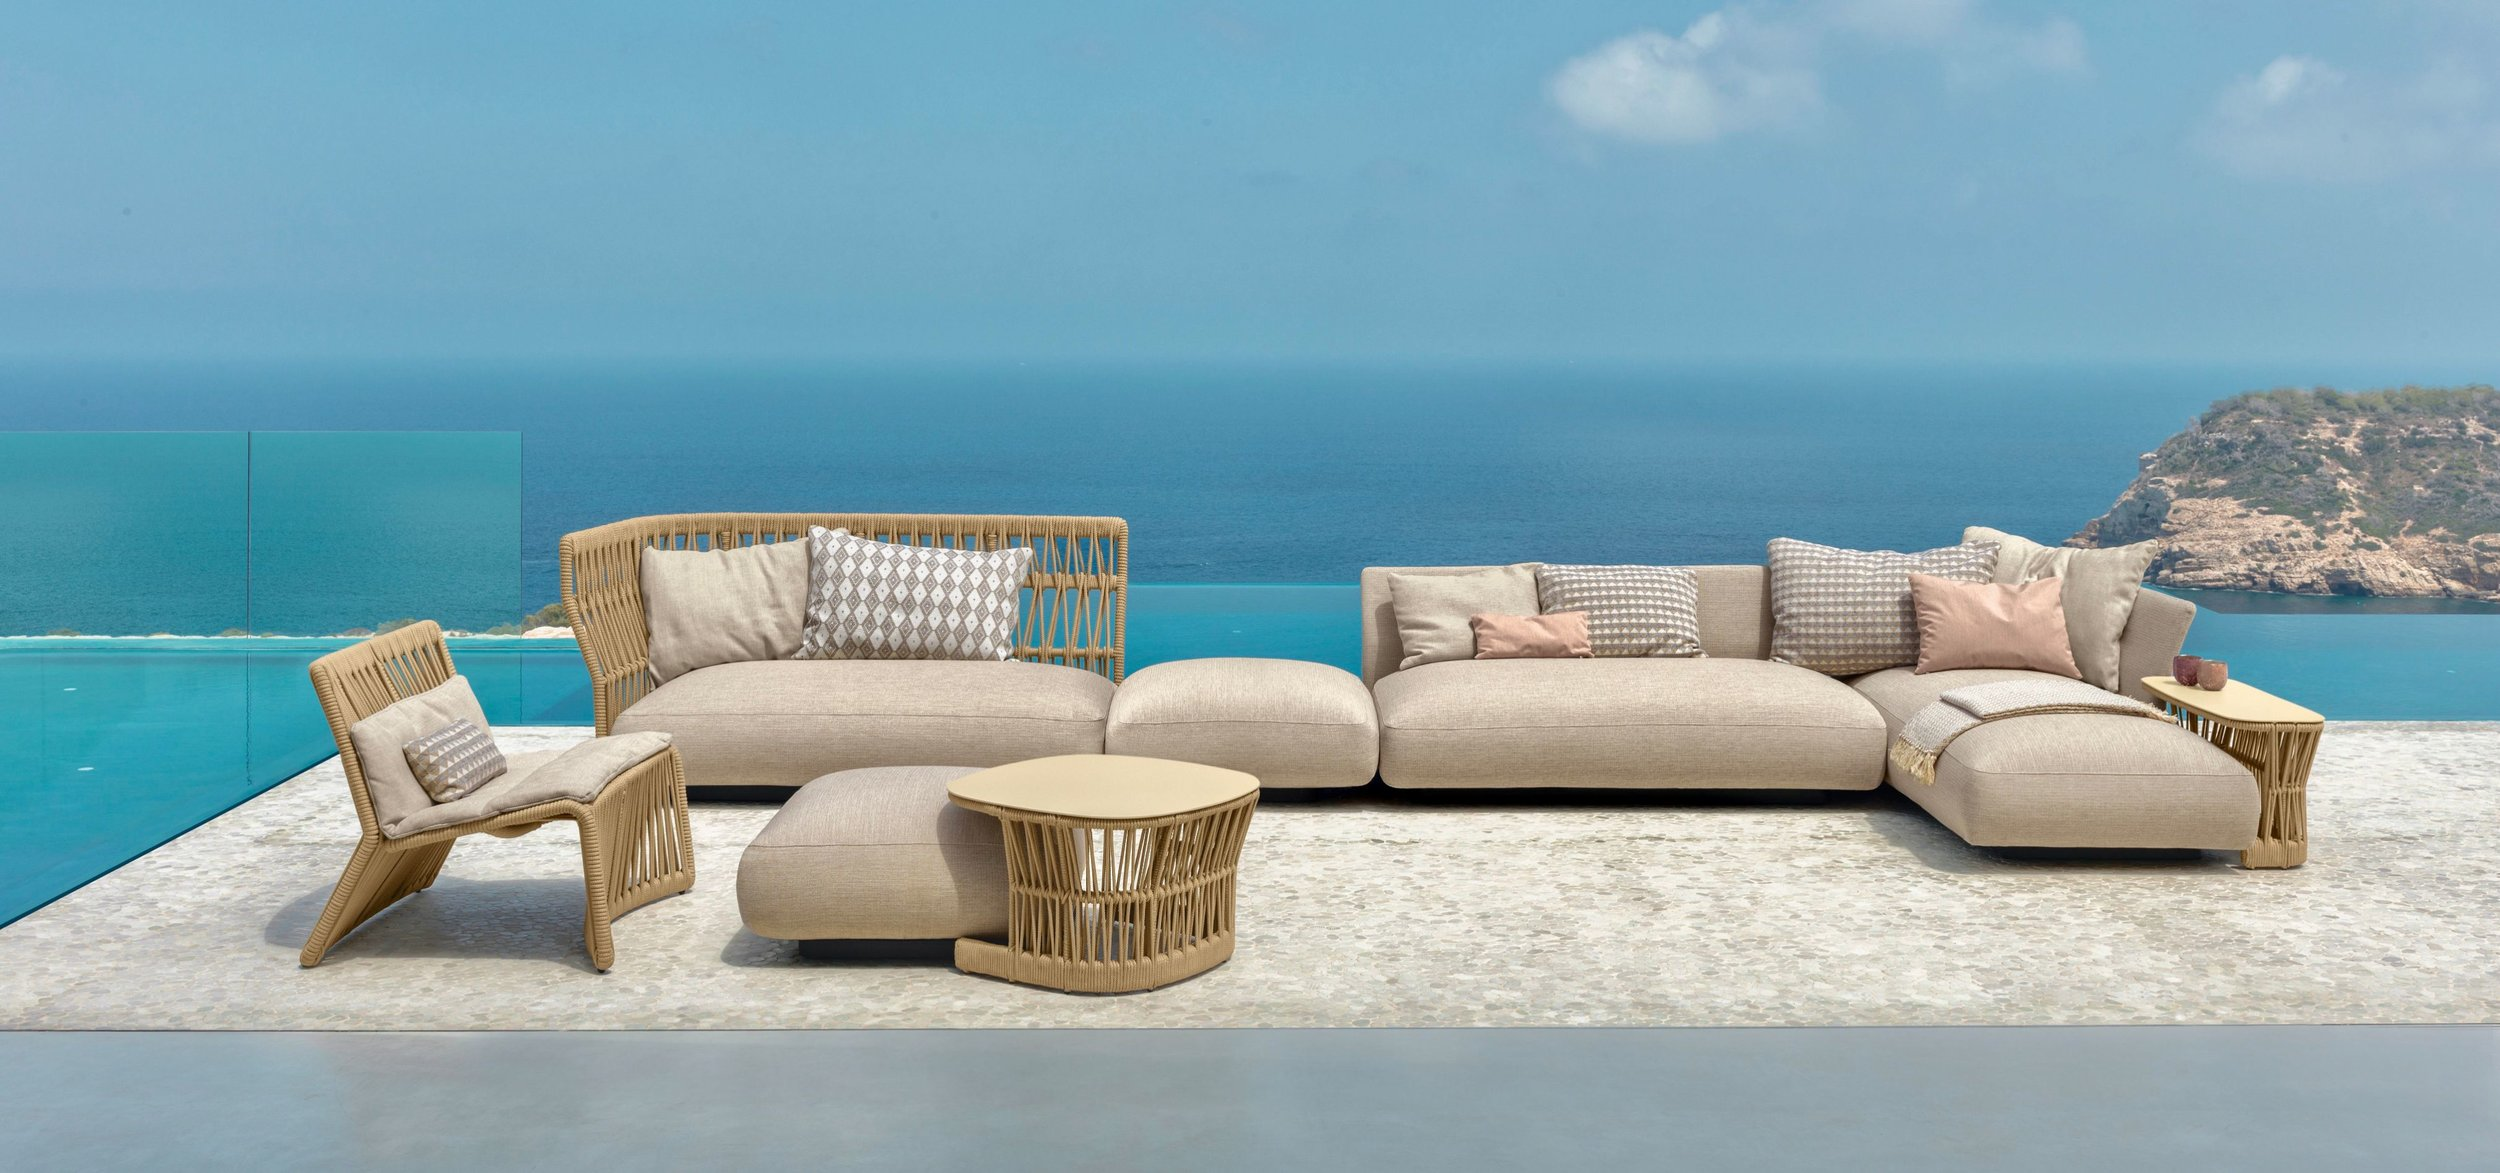 Outdoor sofas - armchairs - ottomans - coffee tables